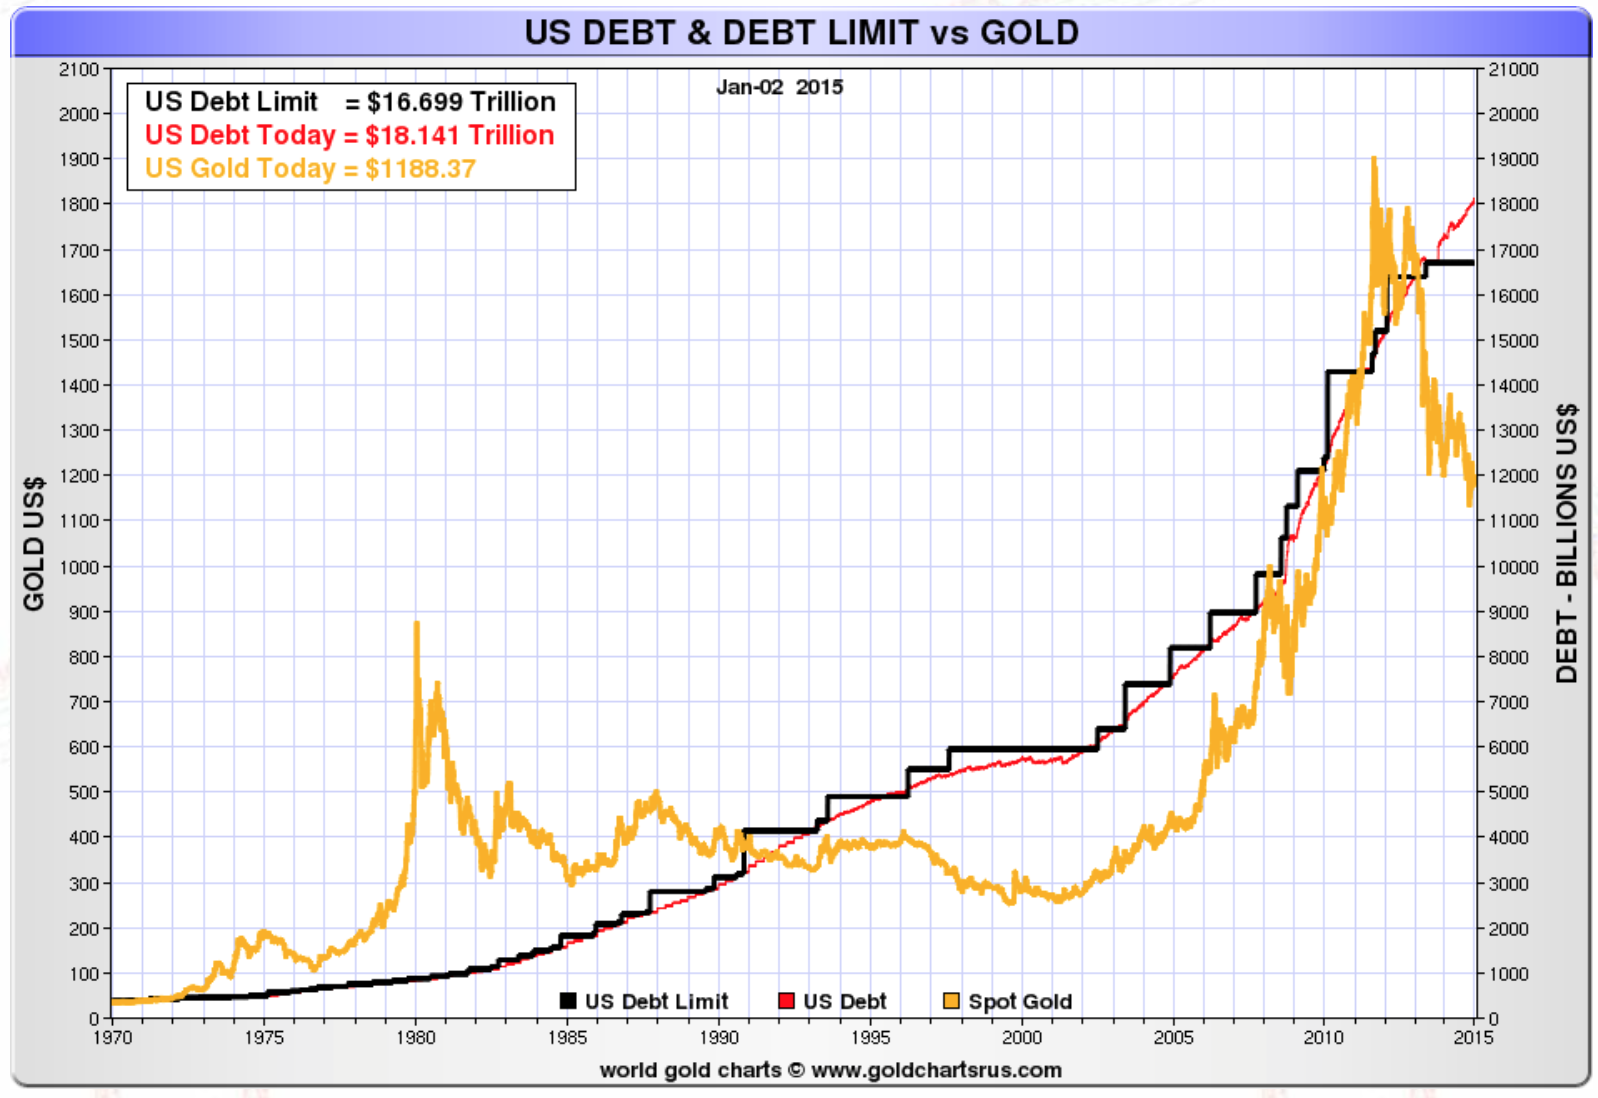 US Debt Limit vs Gold